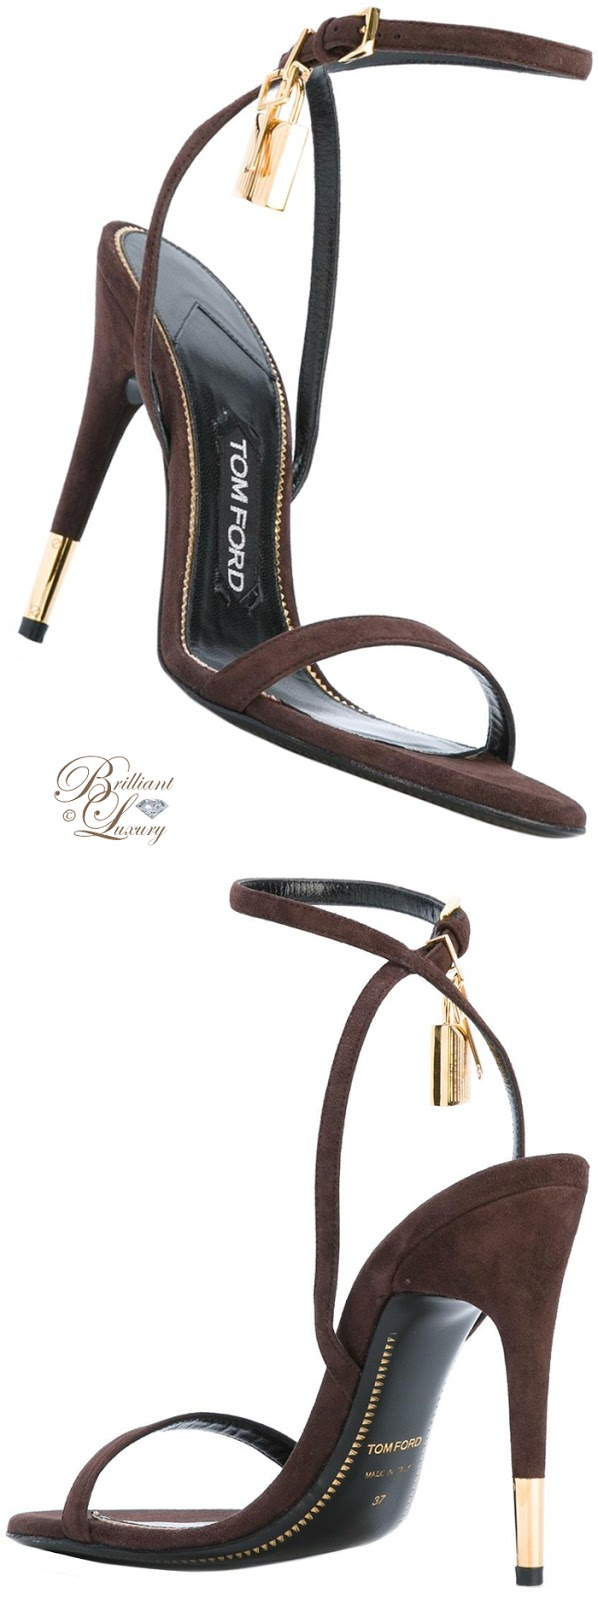 Brilliant Luxury ♦ Tom Ford Ankle Strap Sandals